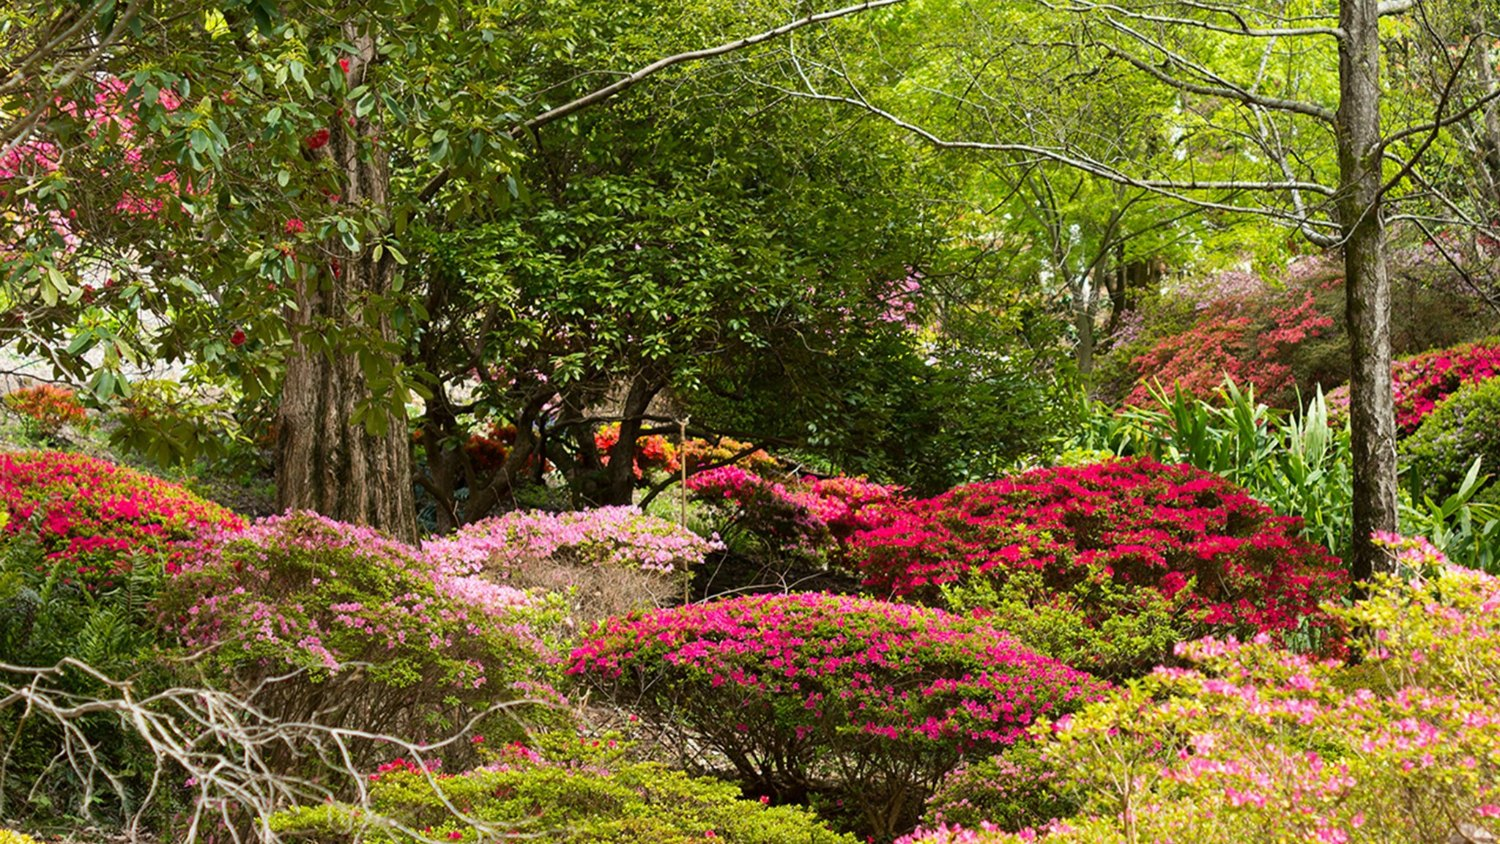 Rhododendron Valley, Mount Lofty Botanic Garden